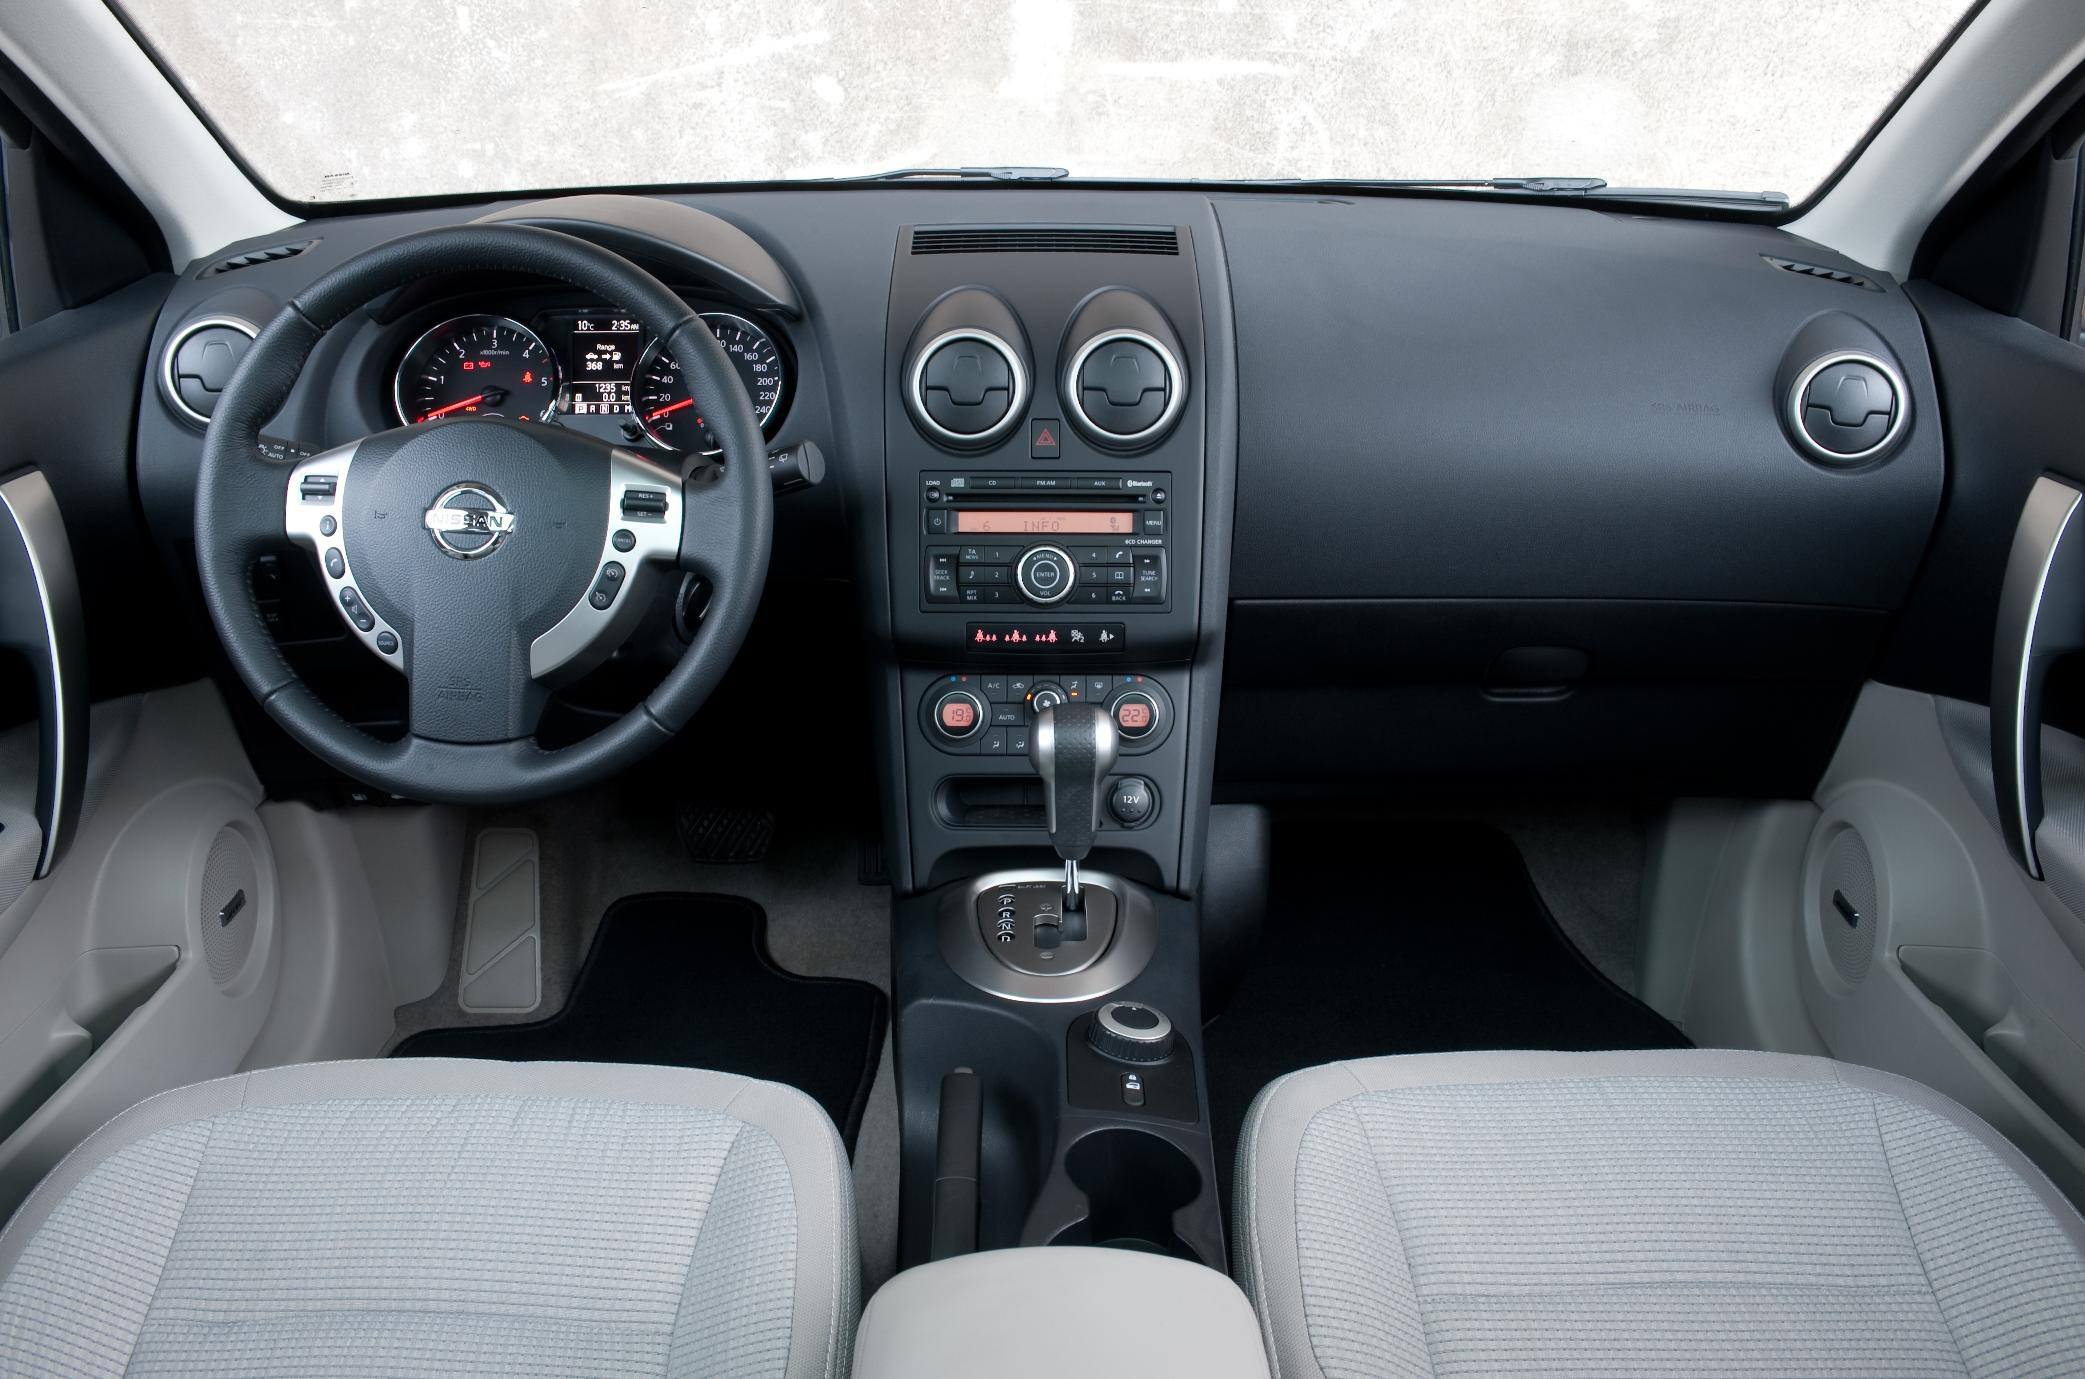 Used Car Buying Guide: Nissan Qashqai interior